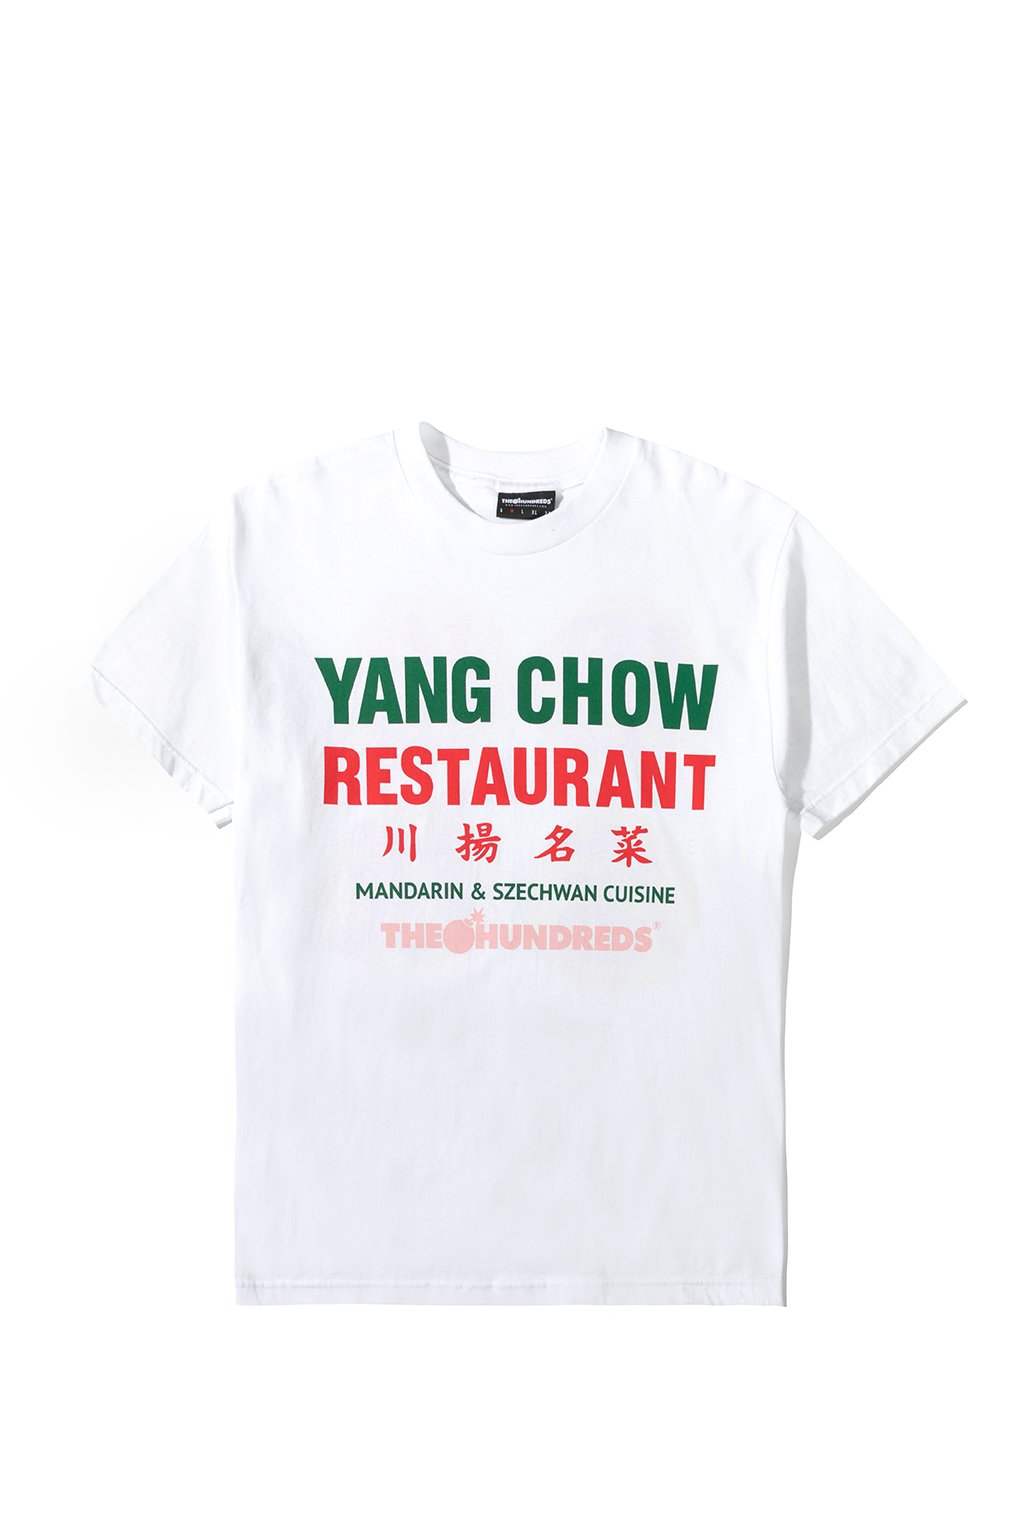 The Hundreds X Yang Chow T-Shirt